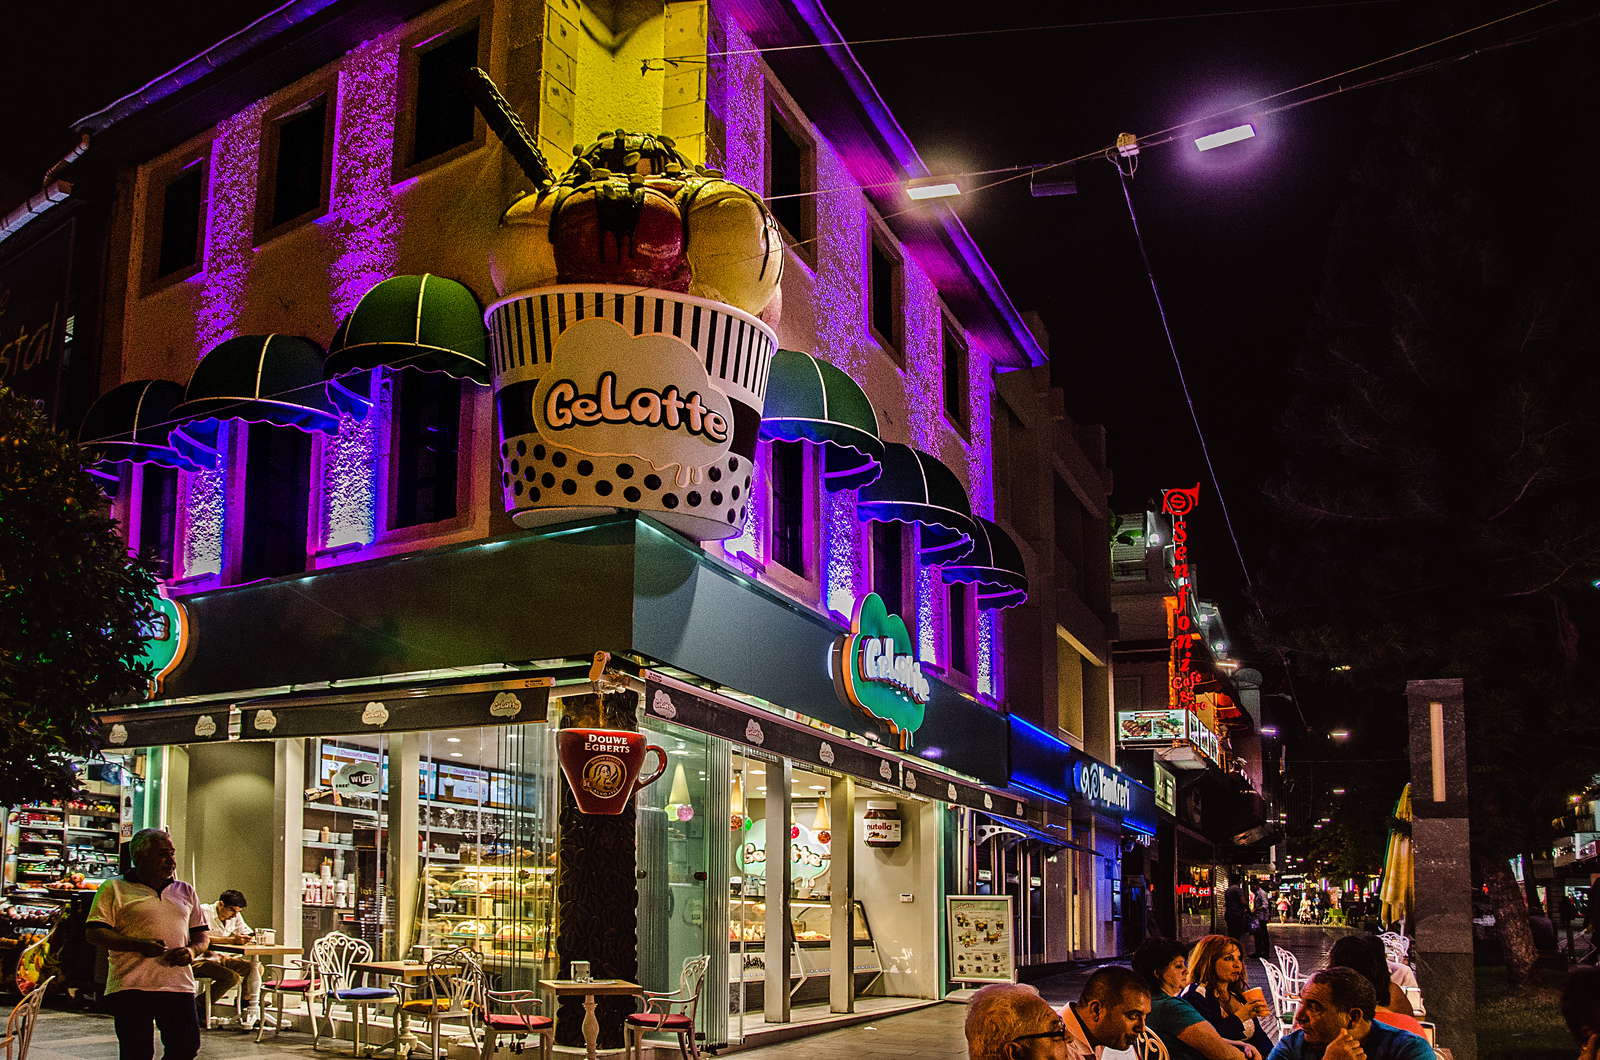 A photo of the GeLatte building at night